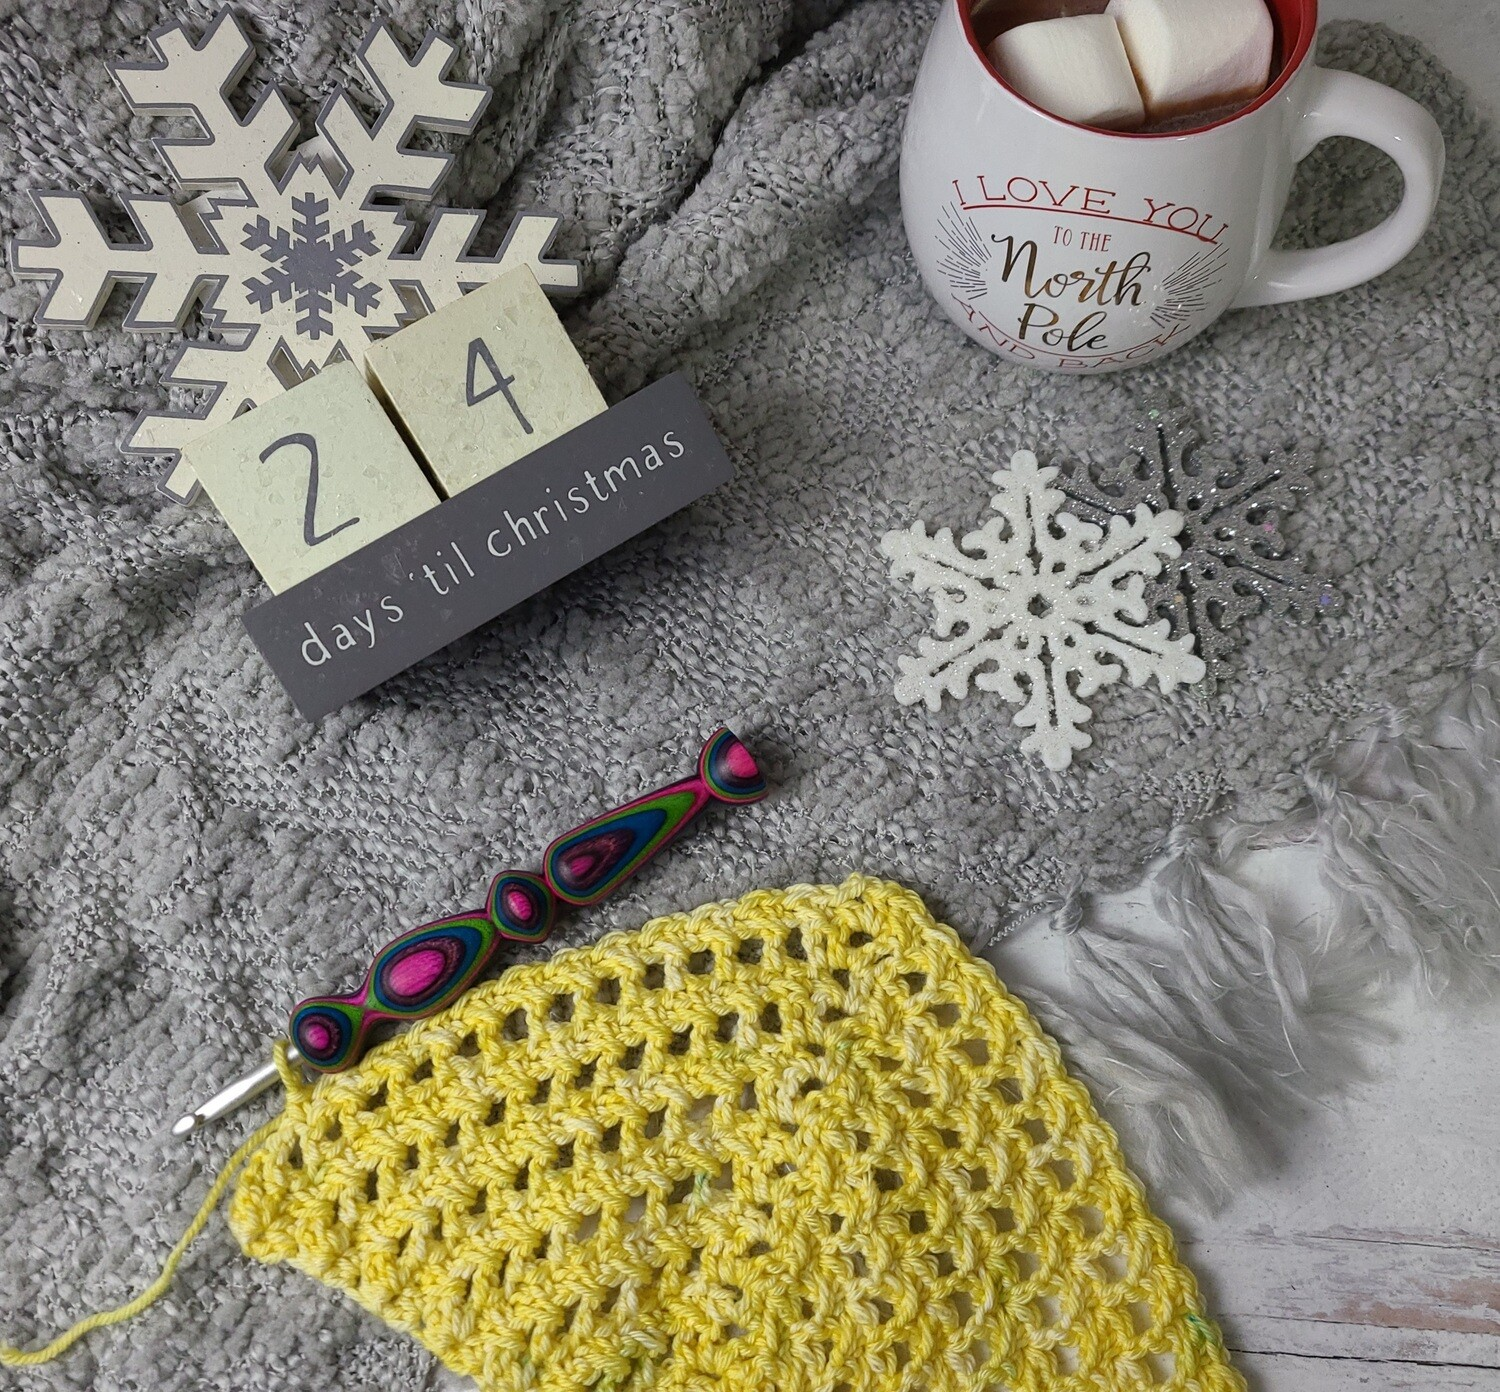 Northern Lights Crochet Hook